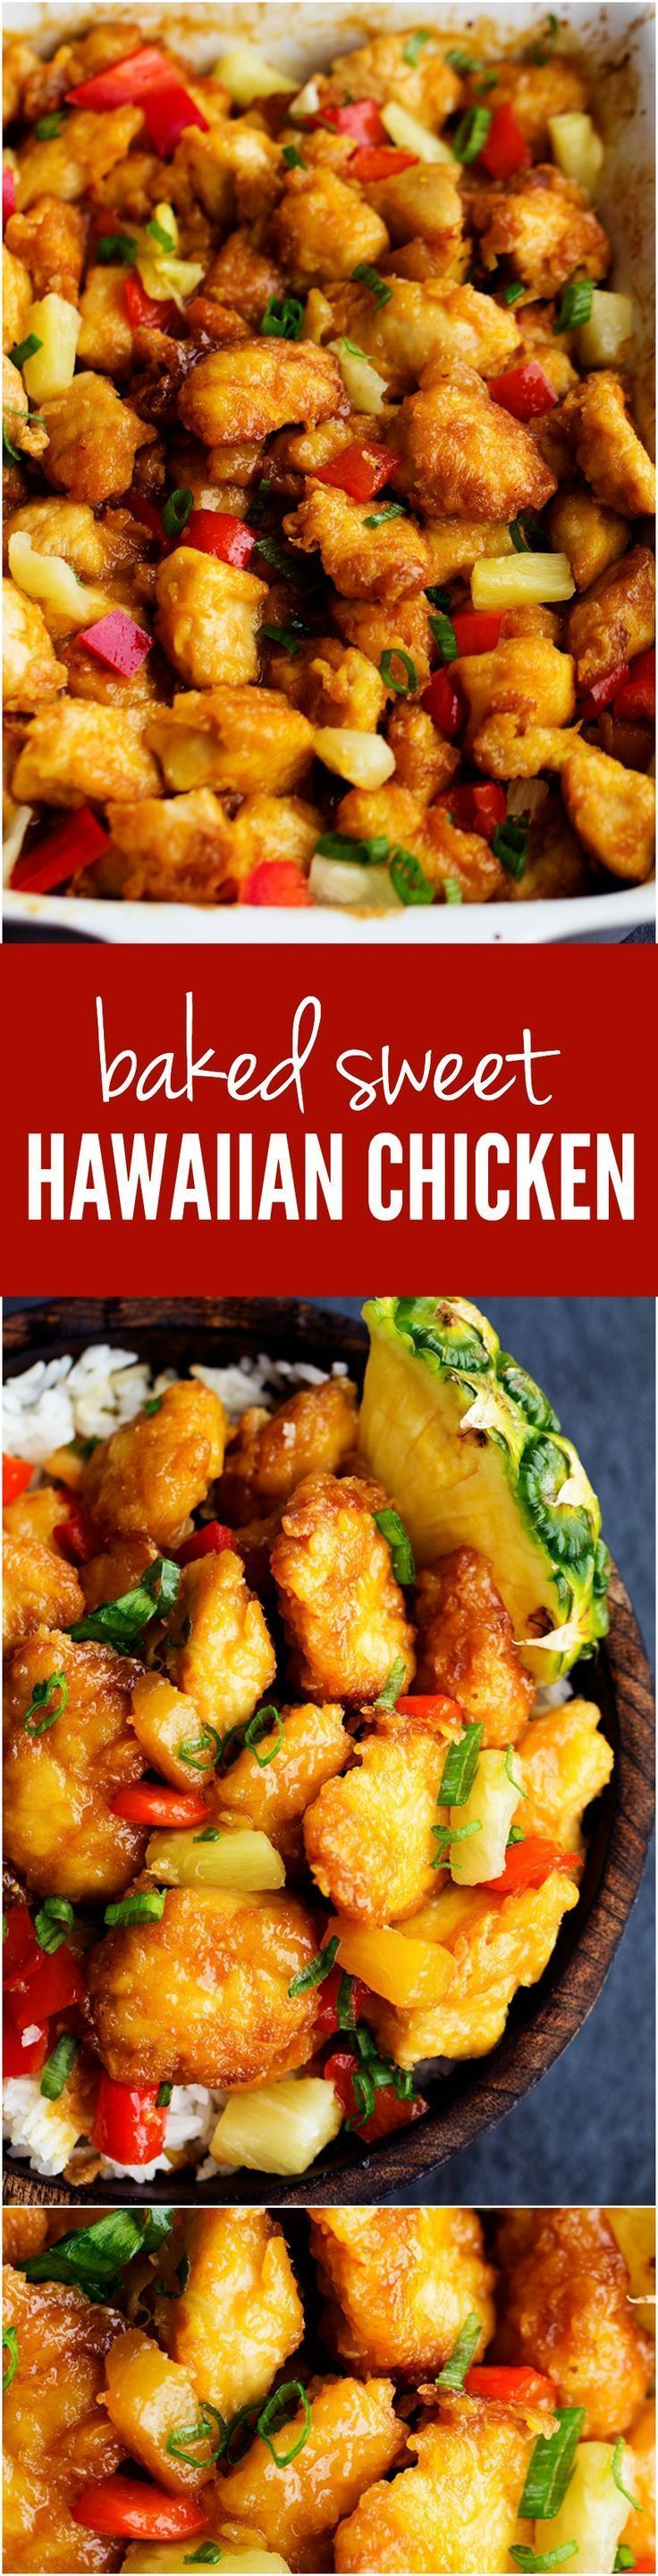 This Baked Hawaiian Chicken is sweet and tangy and better than any takeout you will ever get!!